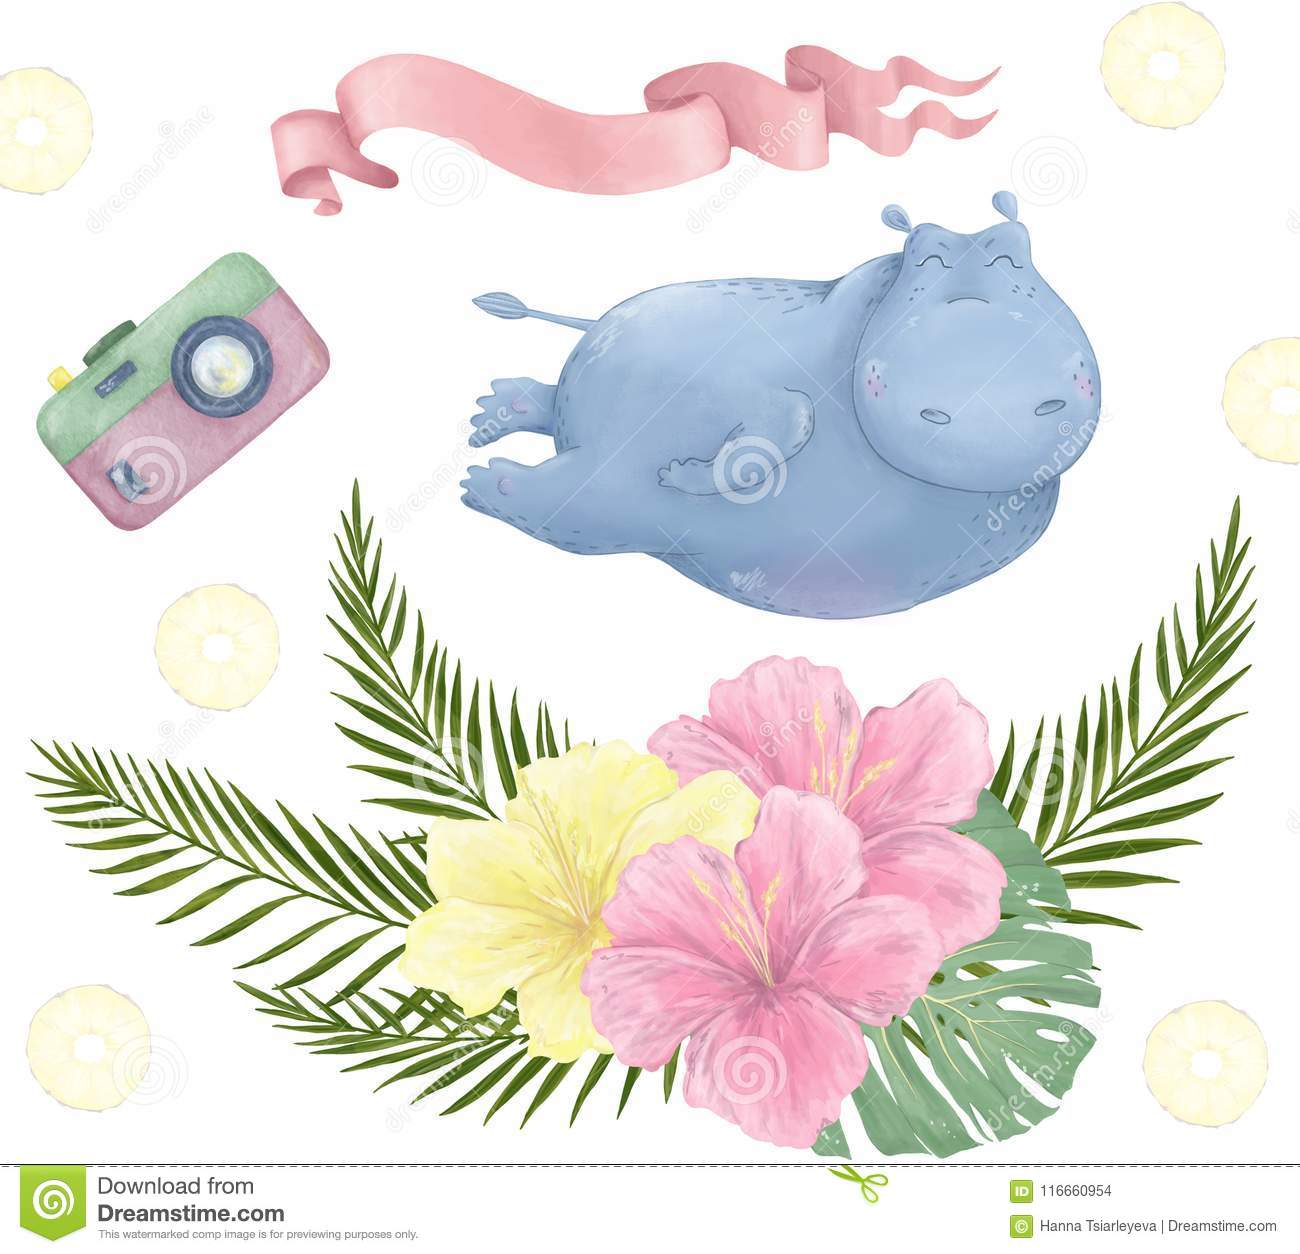 Hippo Cute Clip Art Animal Flying Hippopotamus Digital Set